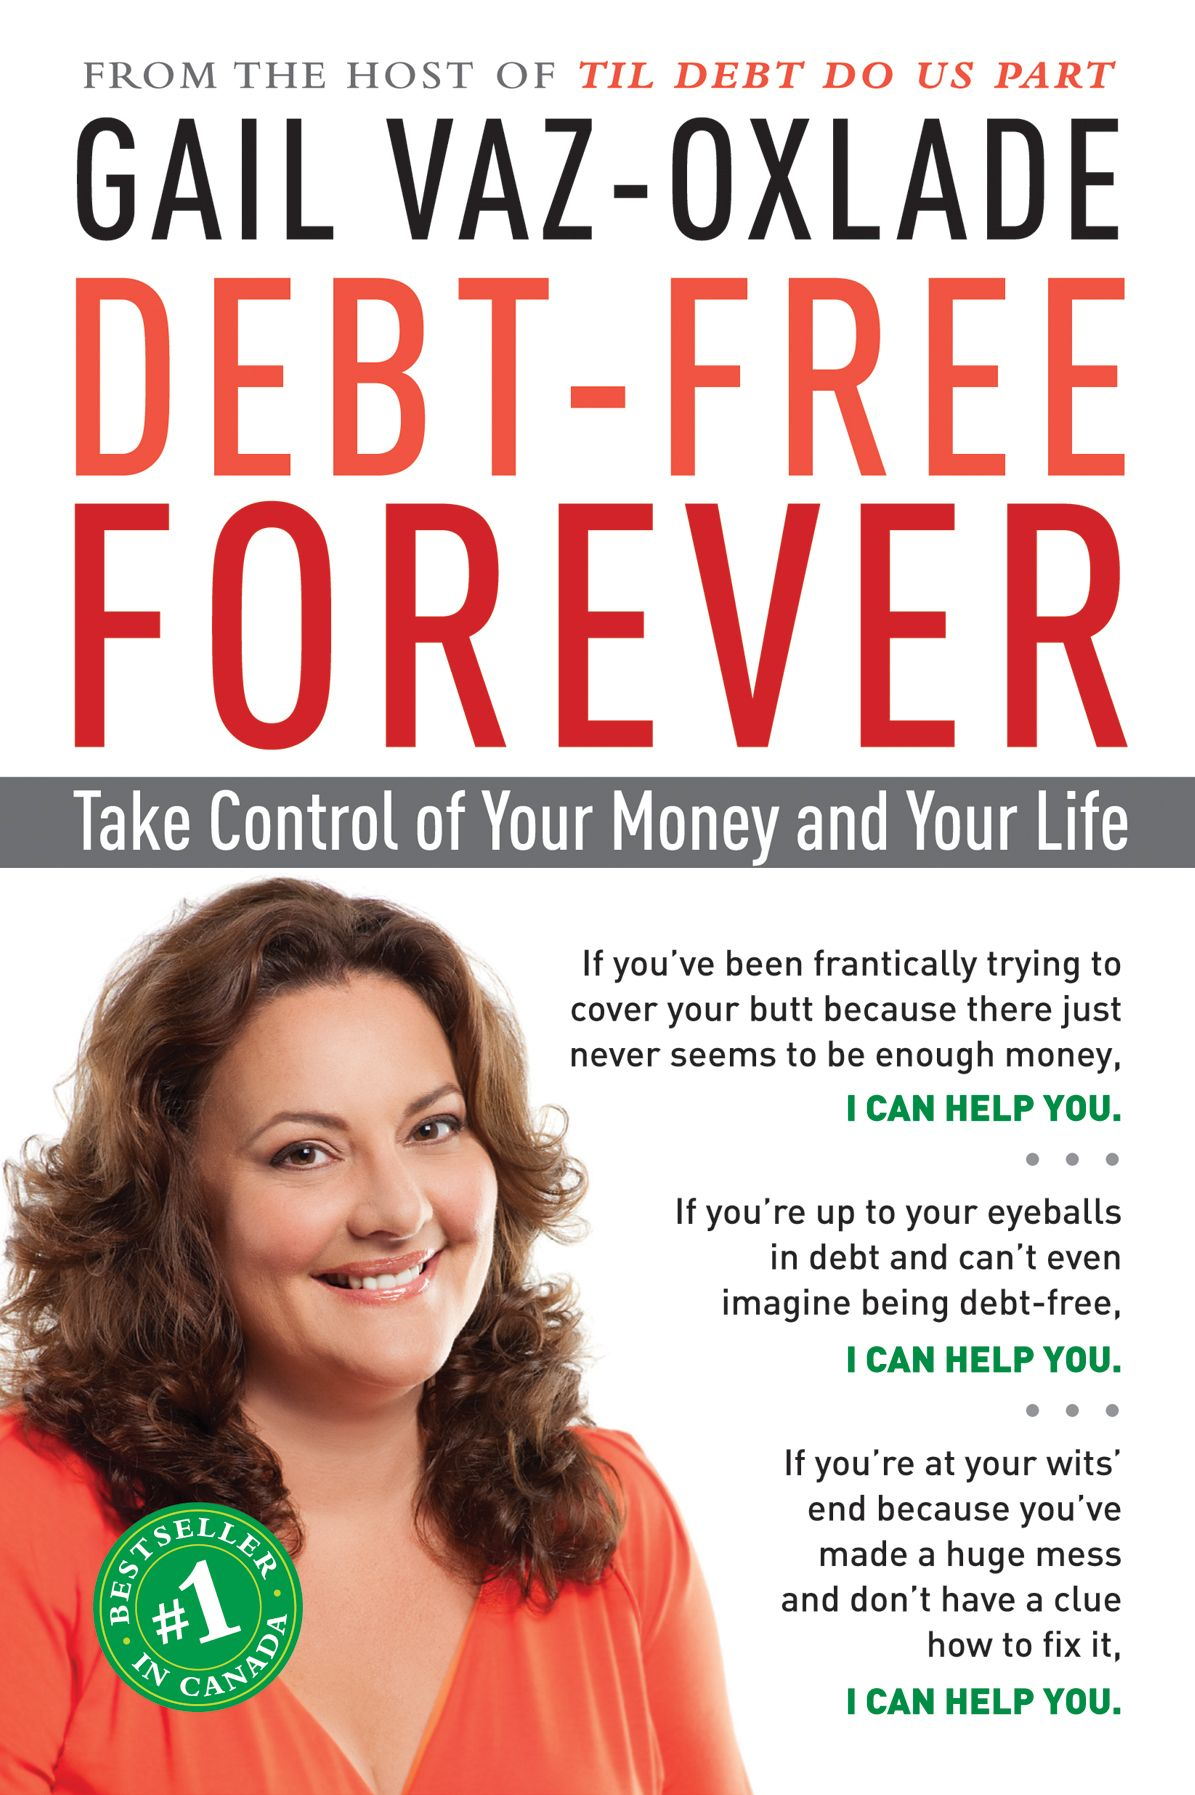 DEBT FREE FOREVER TAKE CONTROL OF YOUR MONEY AND YOUR